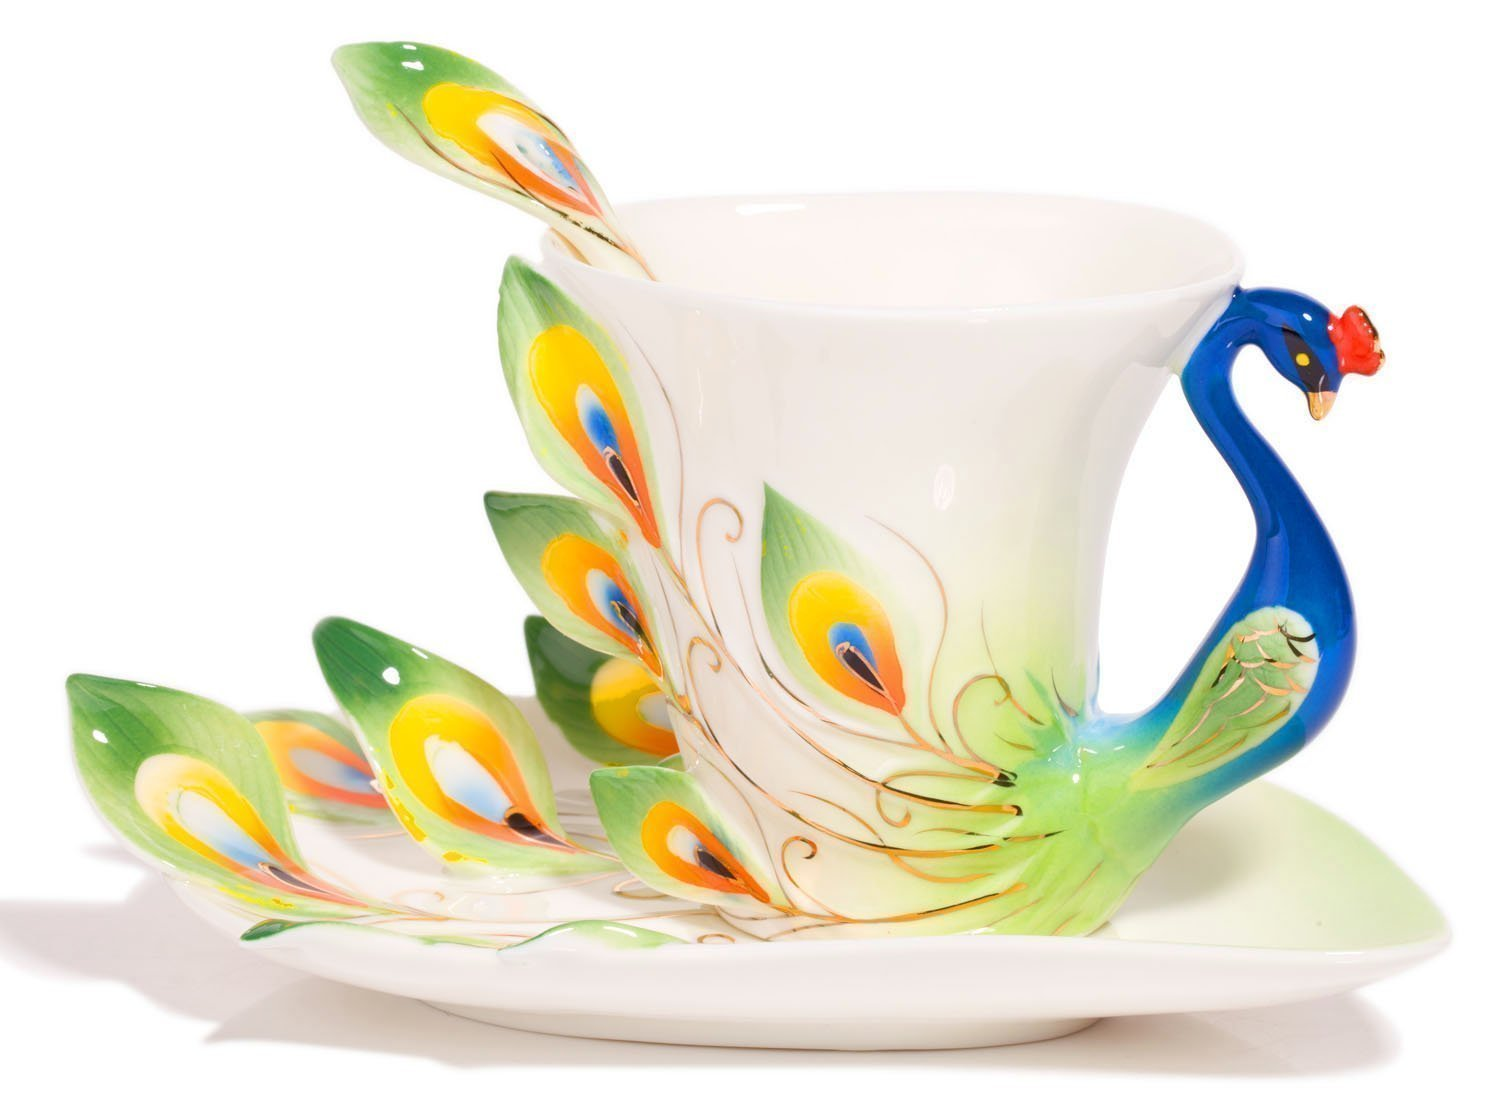 New Fashion Hand Crafted Porcelain Enamel Peacock Coffee Cup Set with Saucer and Spoon - Gift Packaging ELECVELON SYNCHKG109251